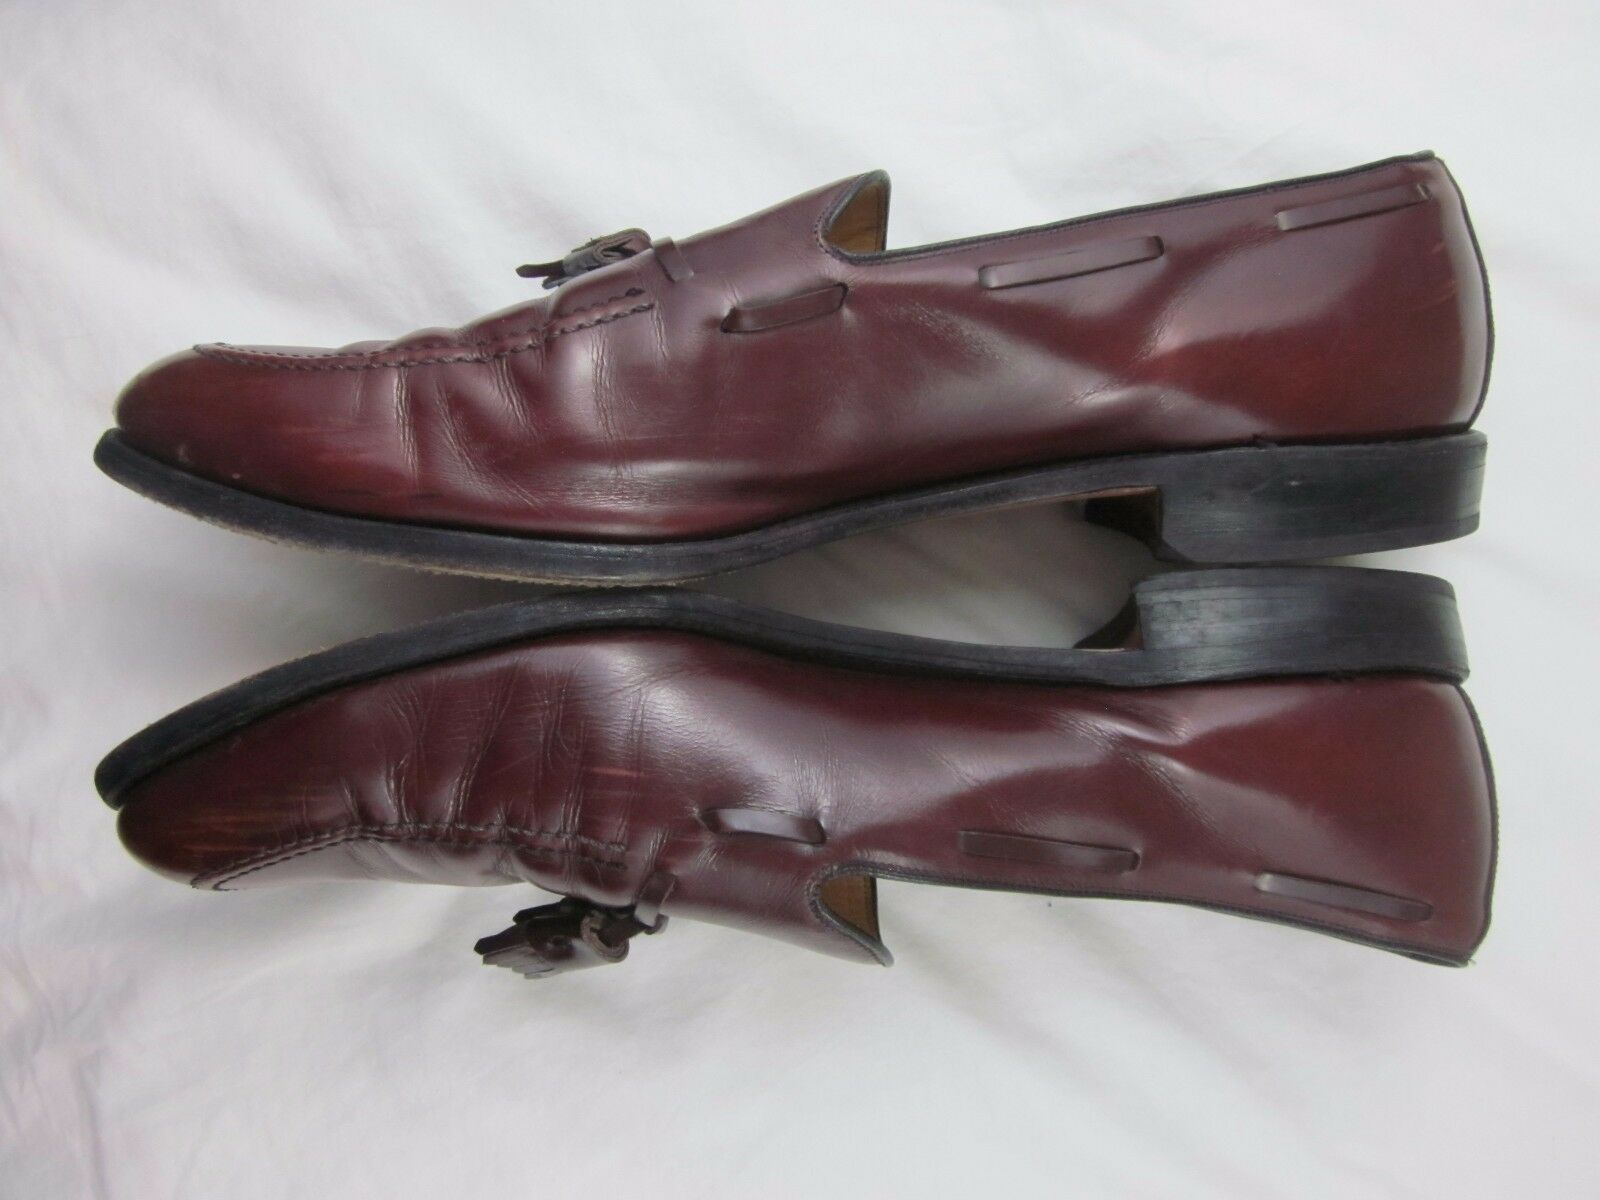 Allen Edmonds Grayson Tassel Loafers Dress Schuhes Burgundy C Leder  Herren Größe 14 C Burgundy 5a35b4